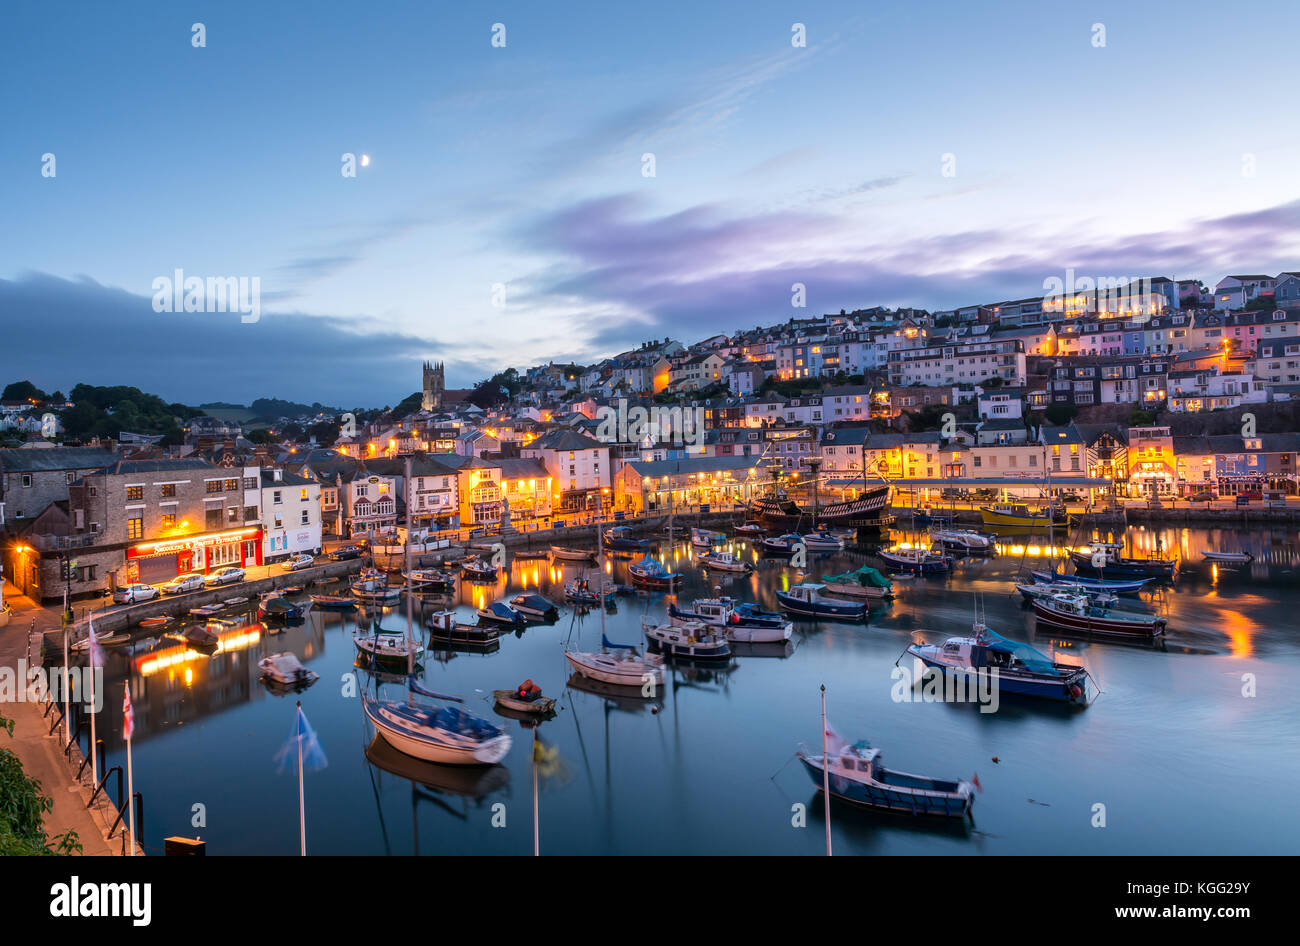 Brixham au crépuscule. Photo Stock